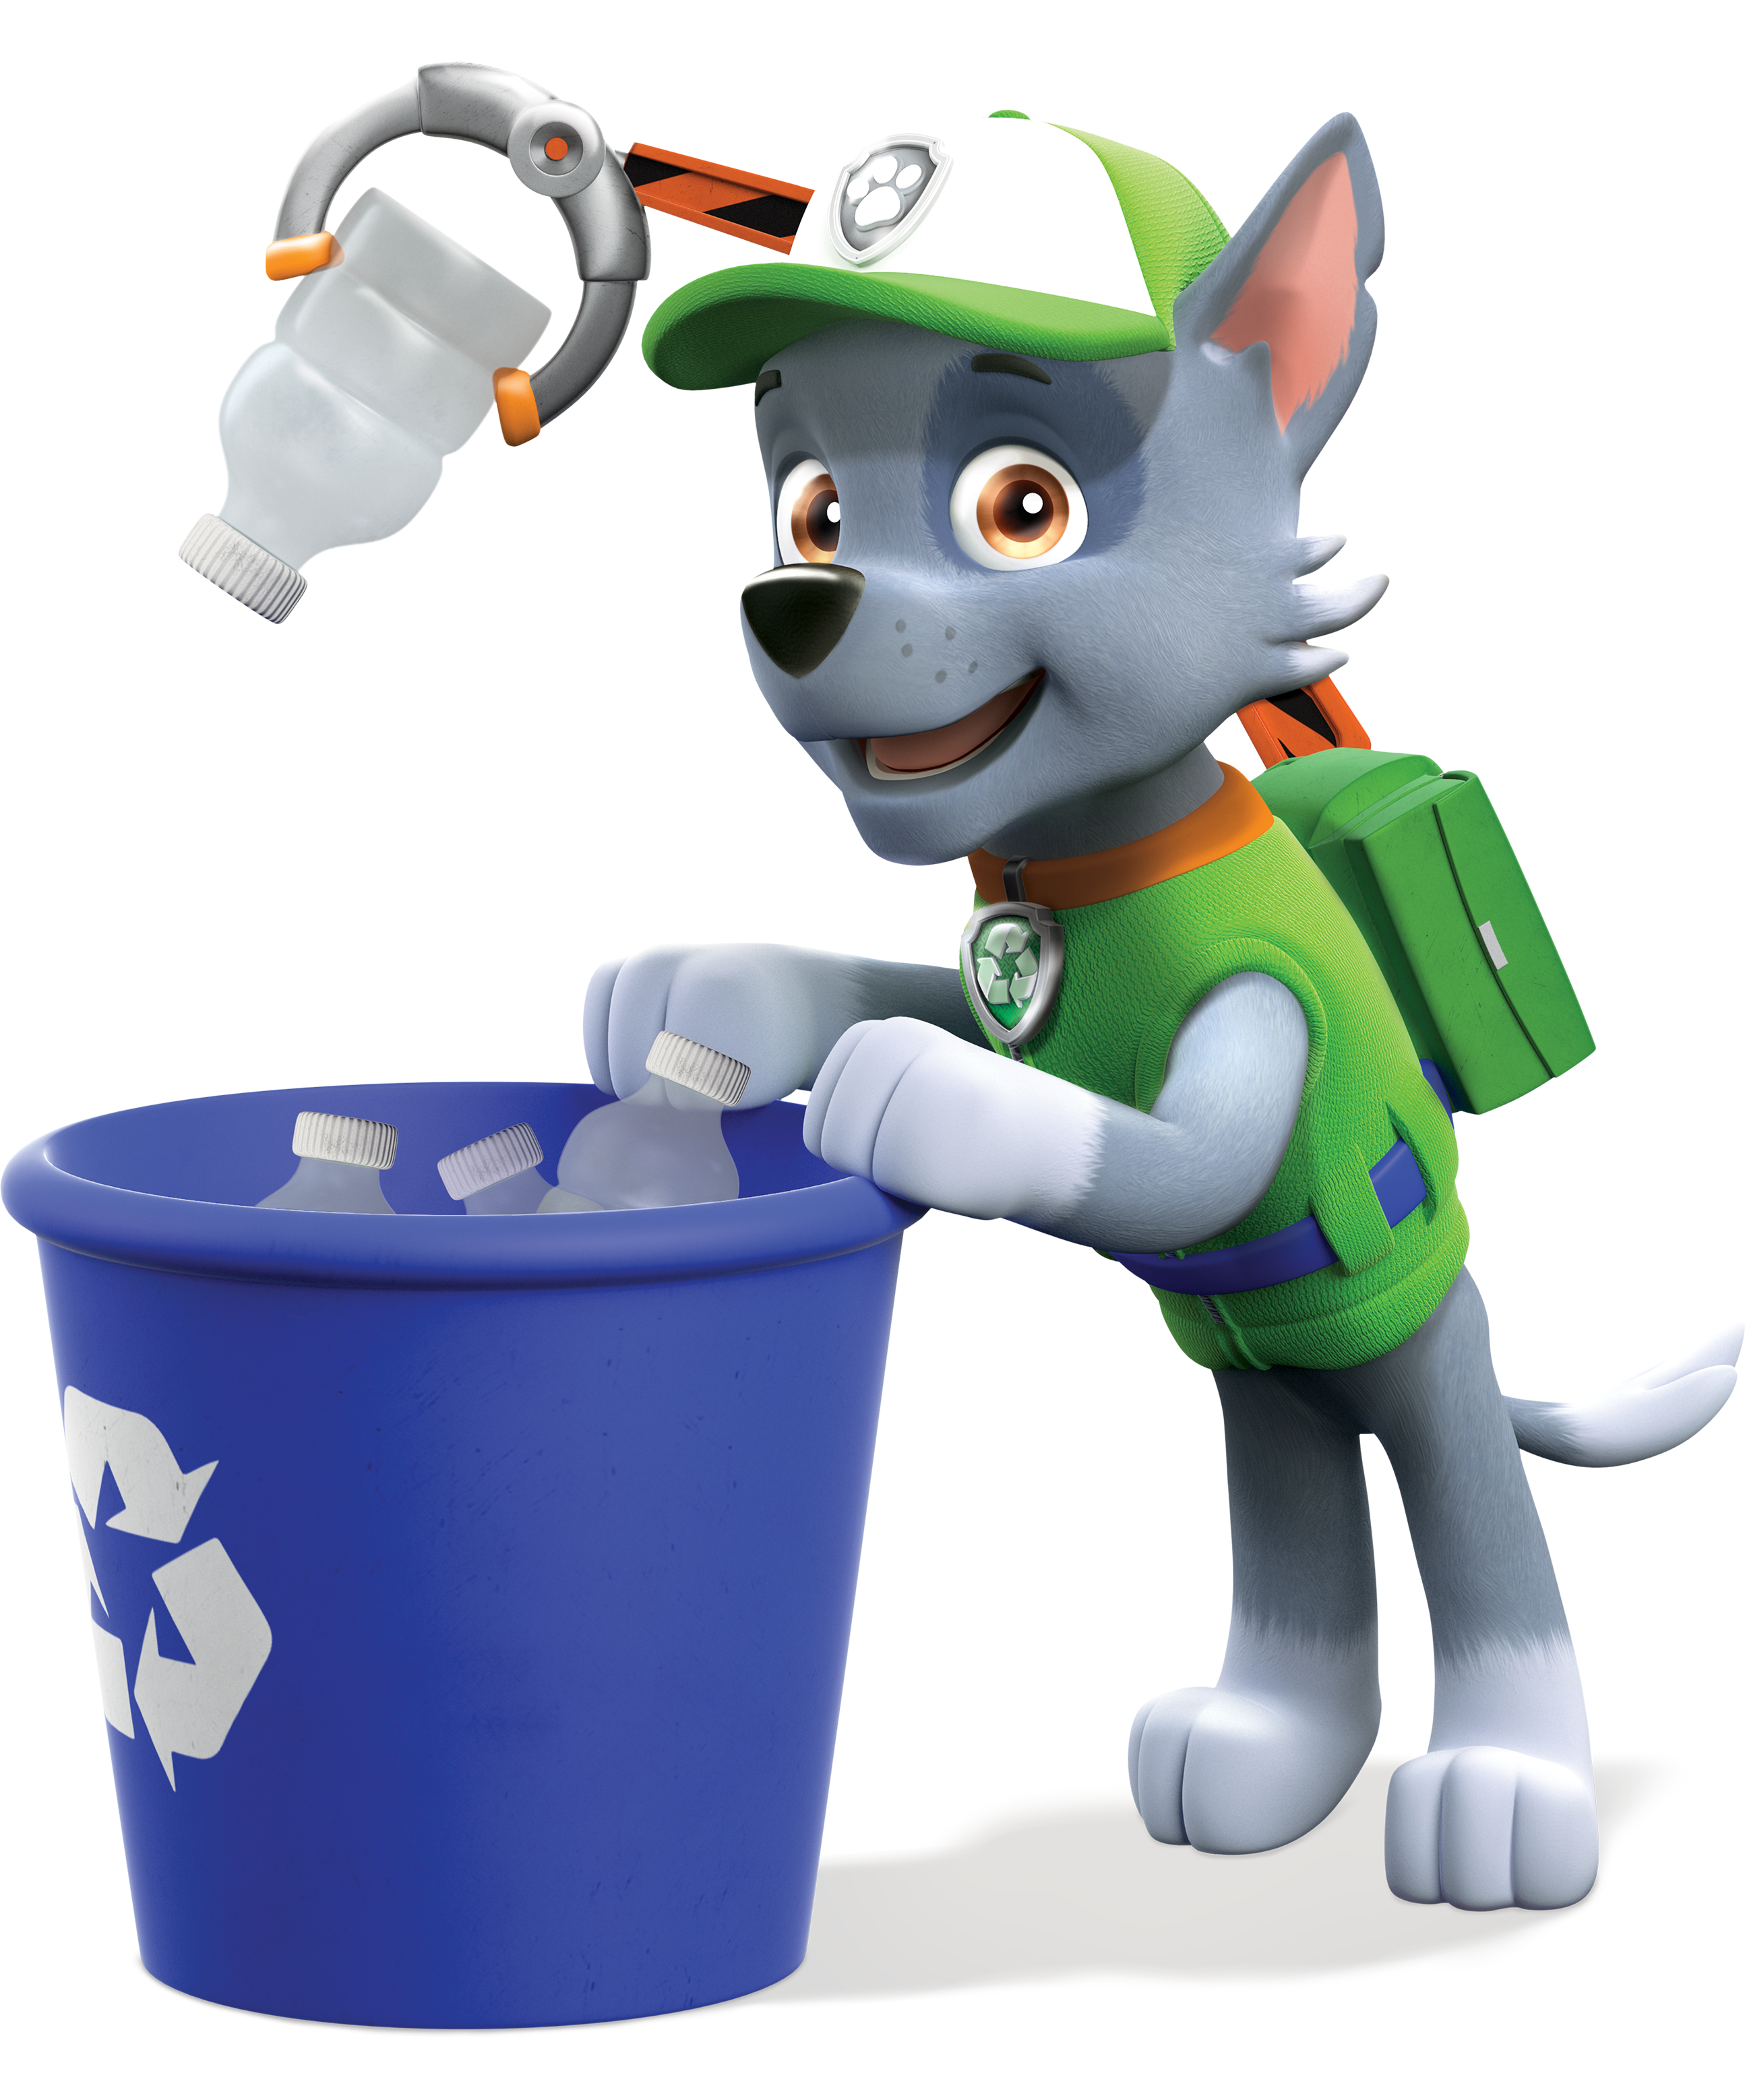 Paw patrol zuma png. Rocky gallery pinterest and